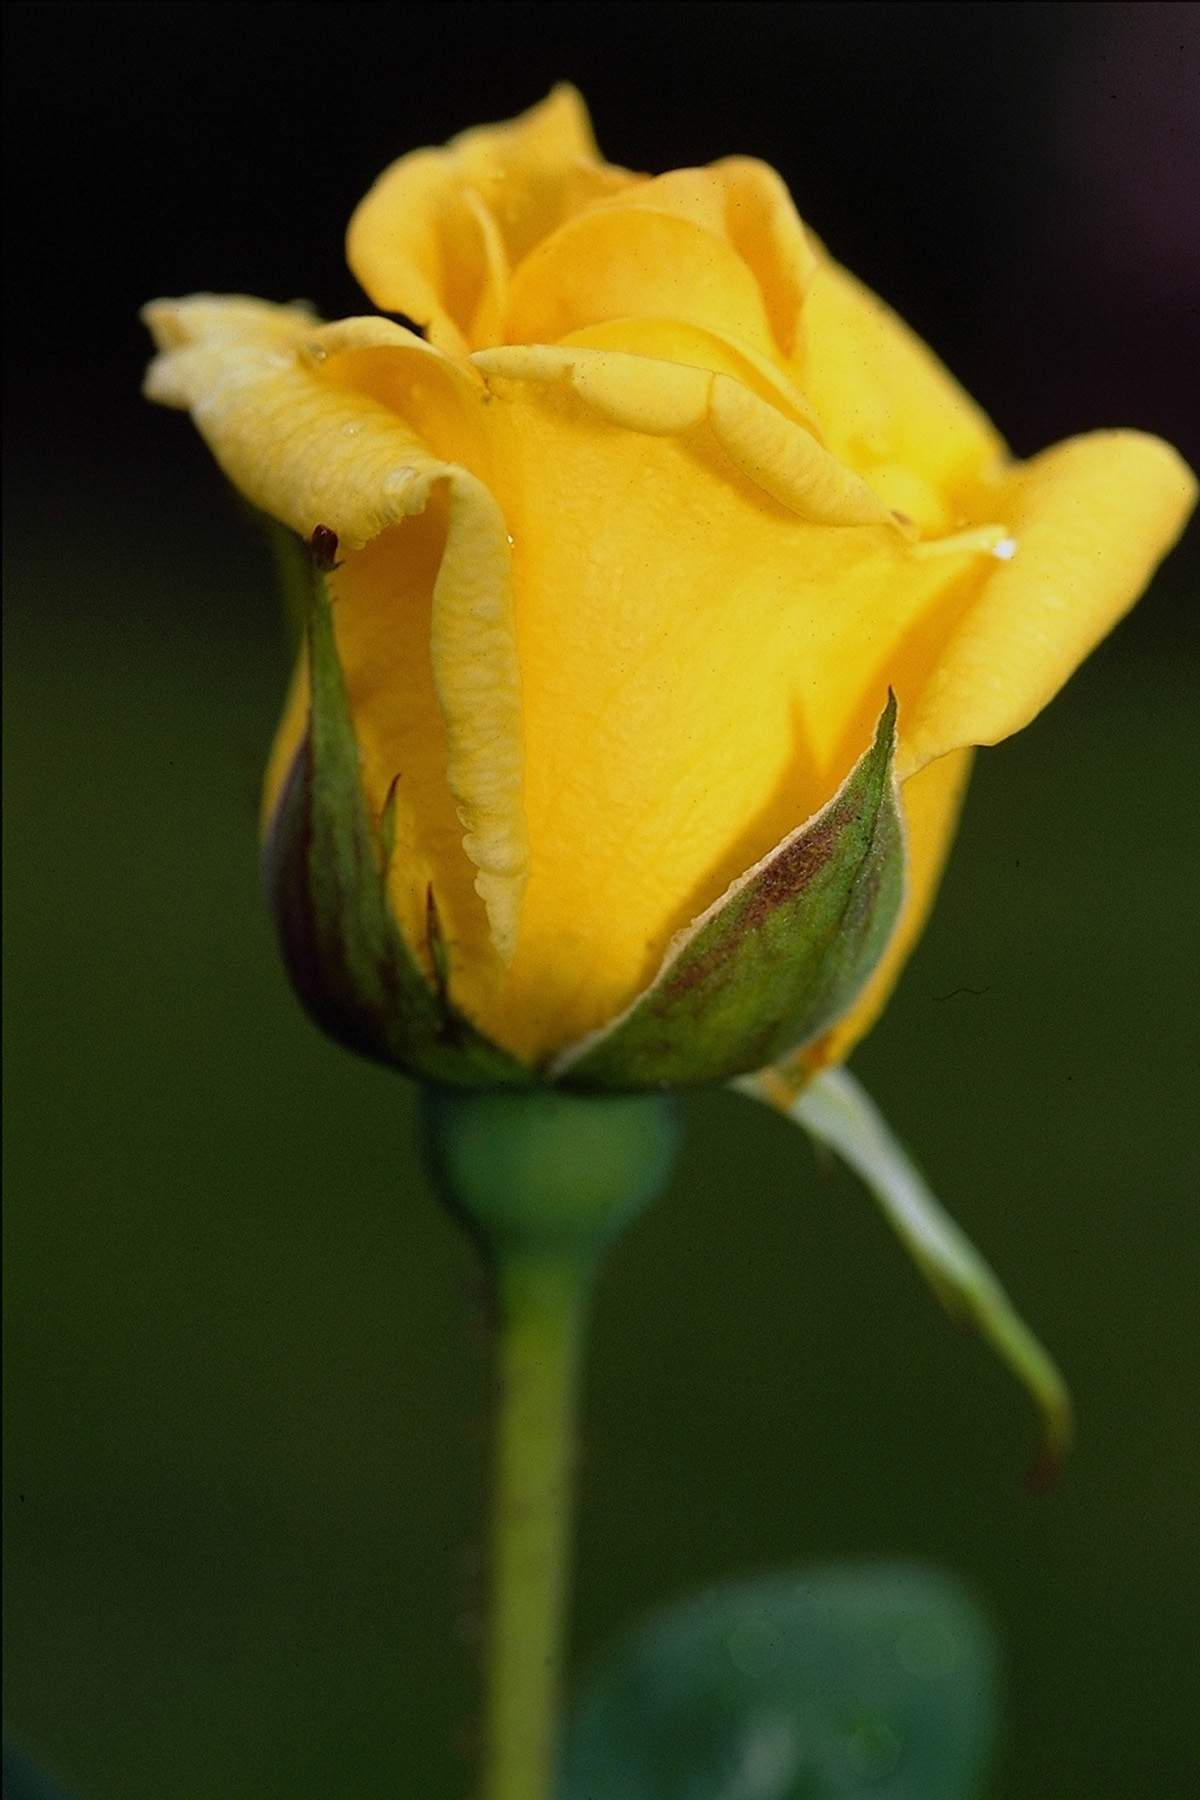 wallpaper of yellow roses - photo #21